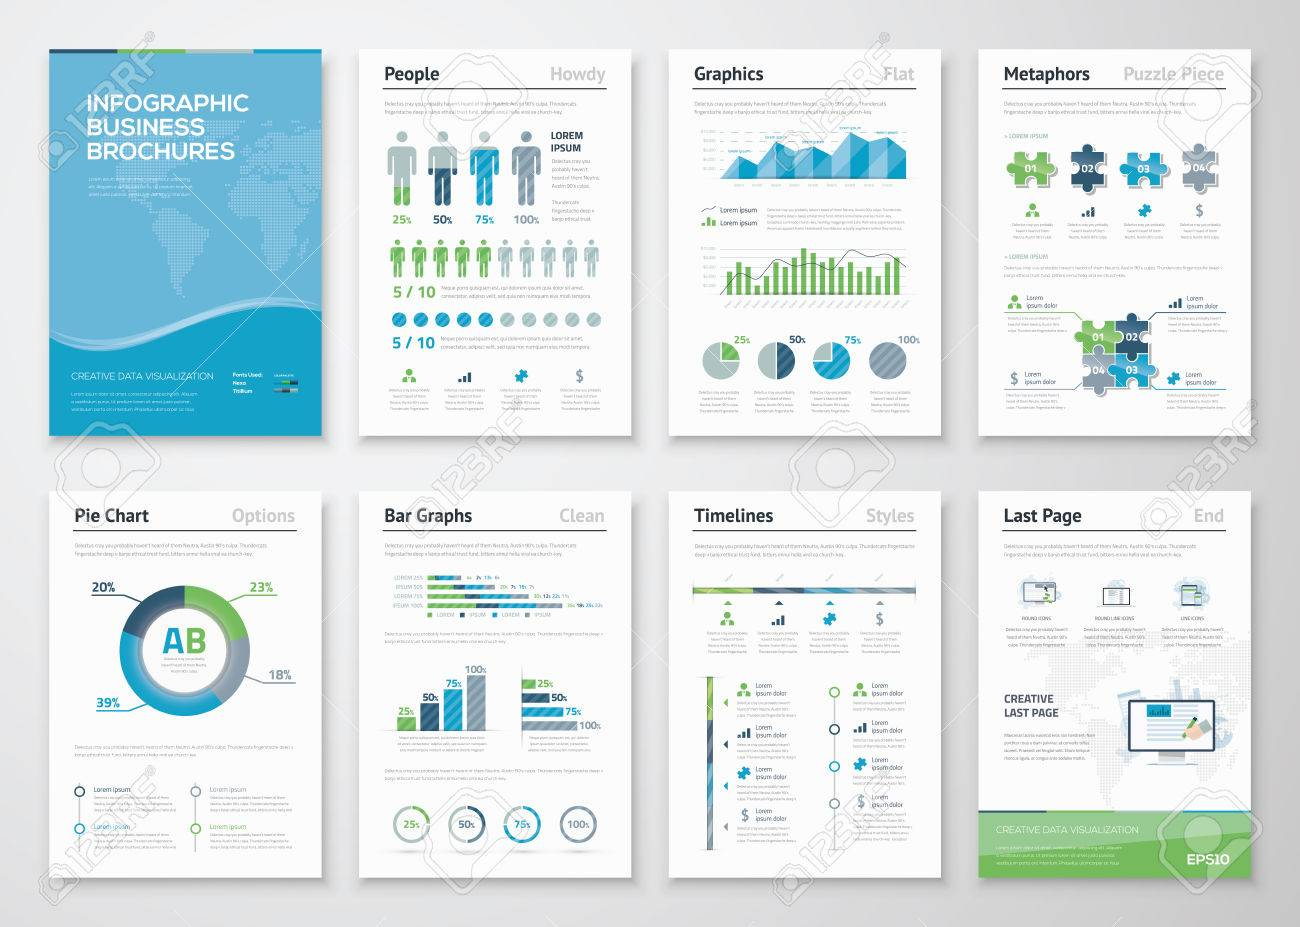 Infographics brochure elements for business data visualization infographics brochure elements for business data visualization stock vector 35400538 publicscrutiny Images